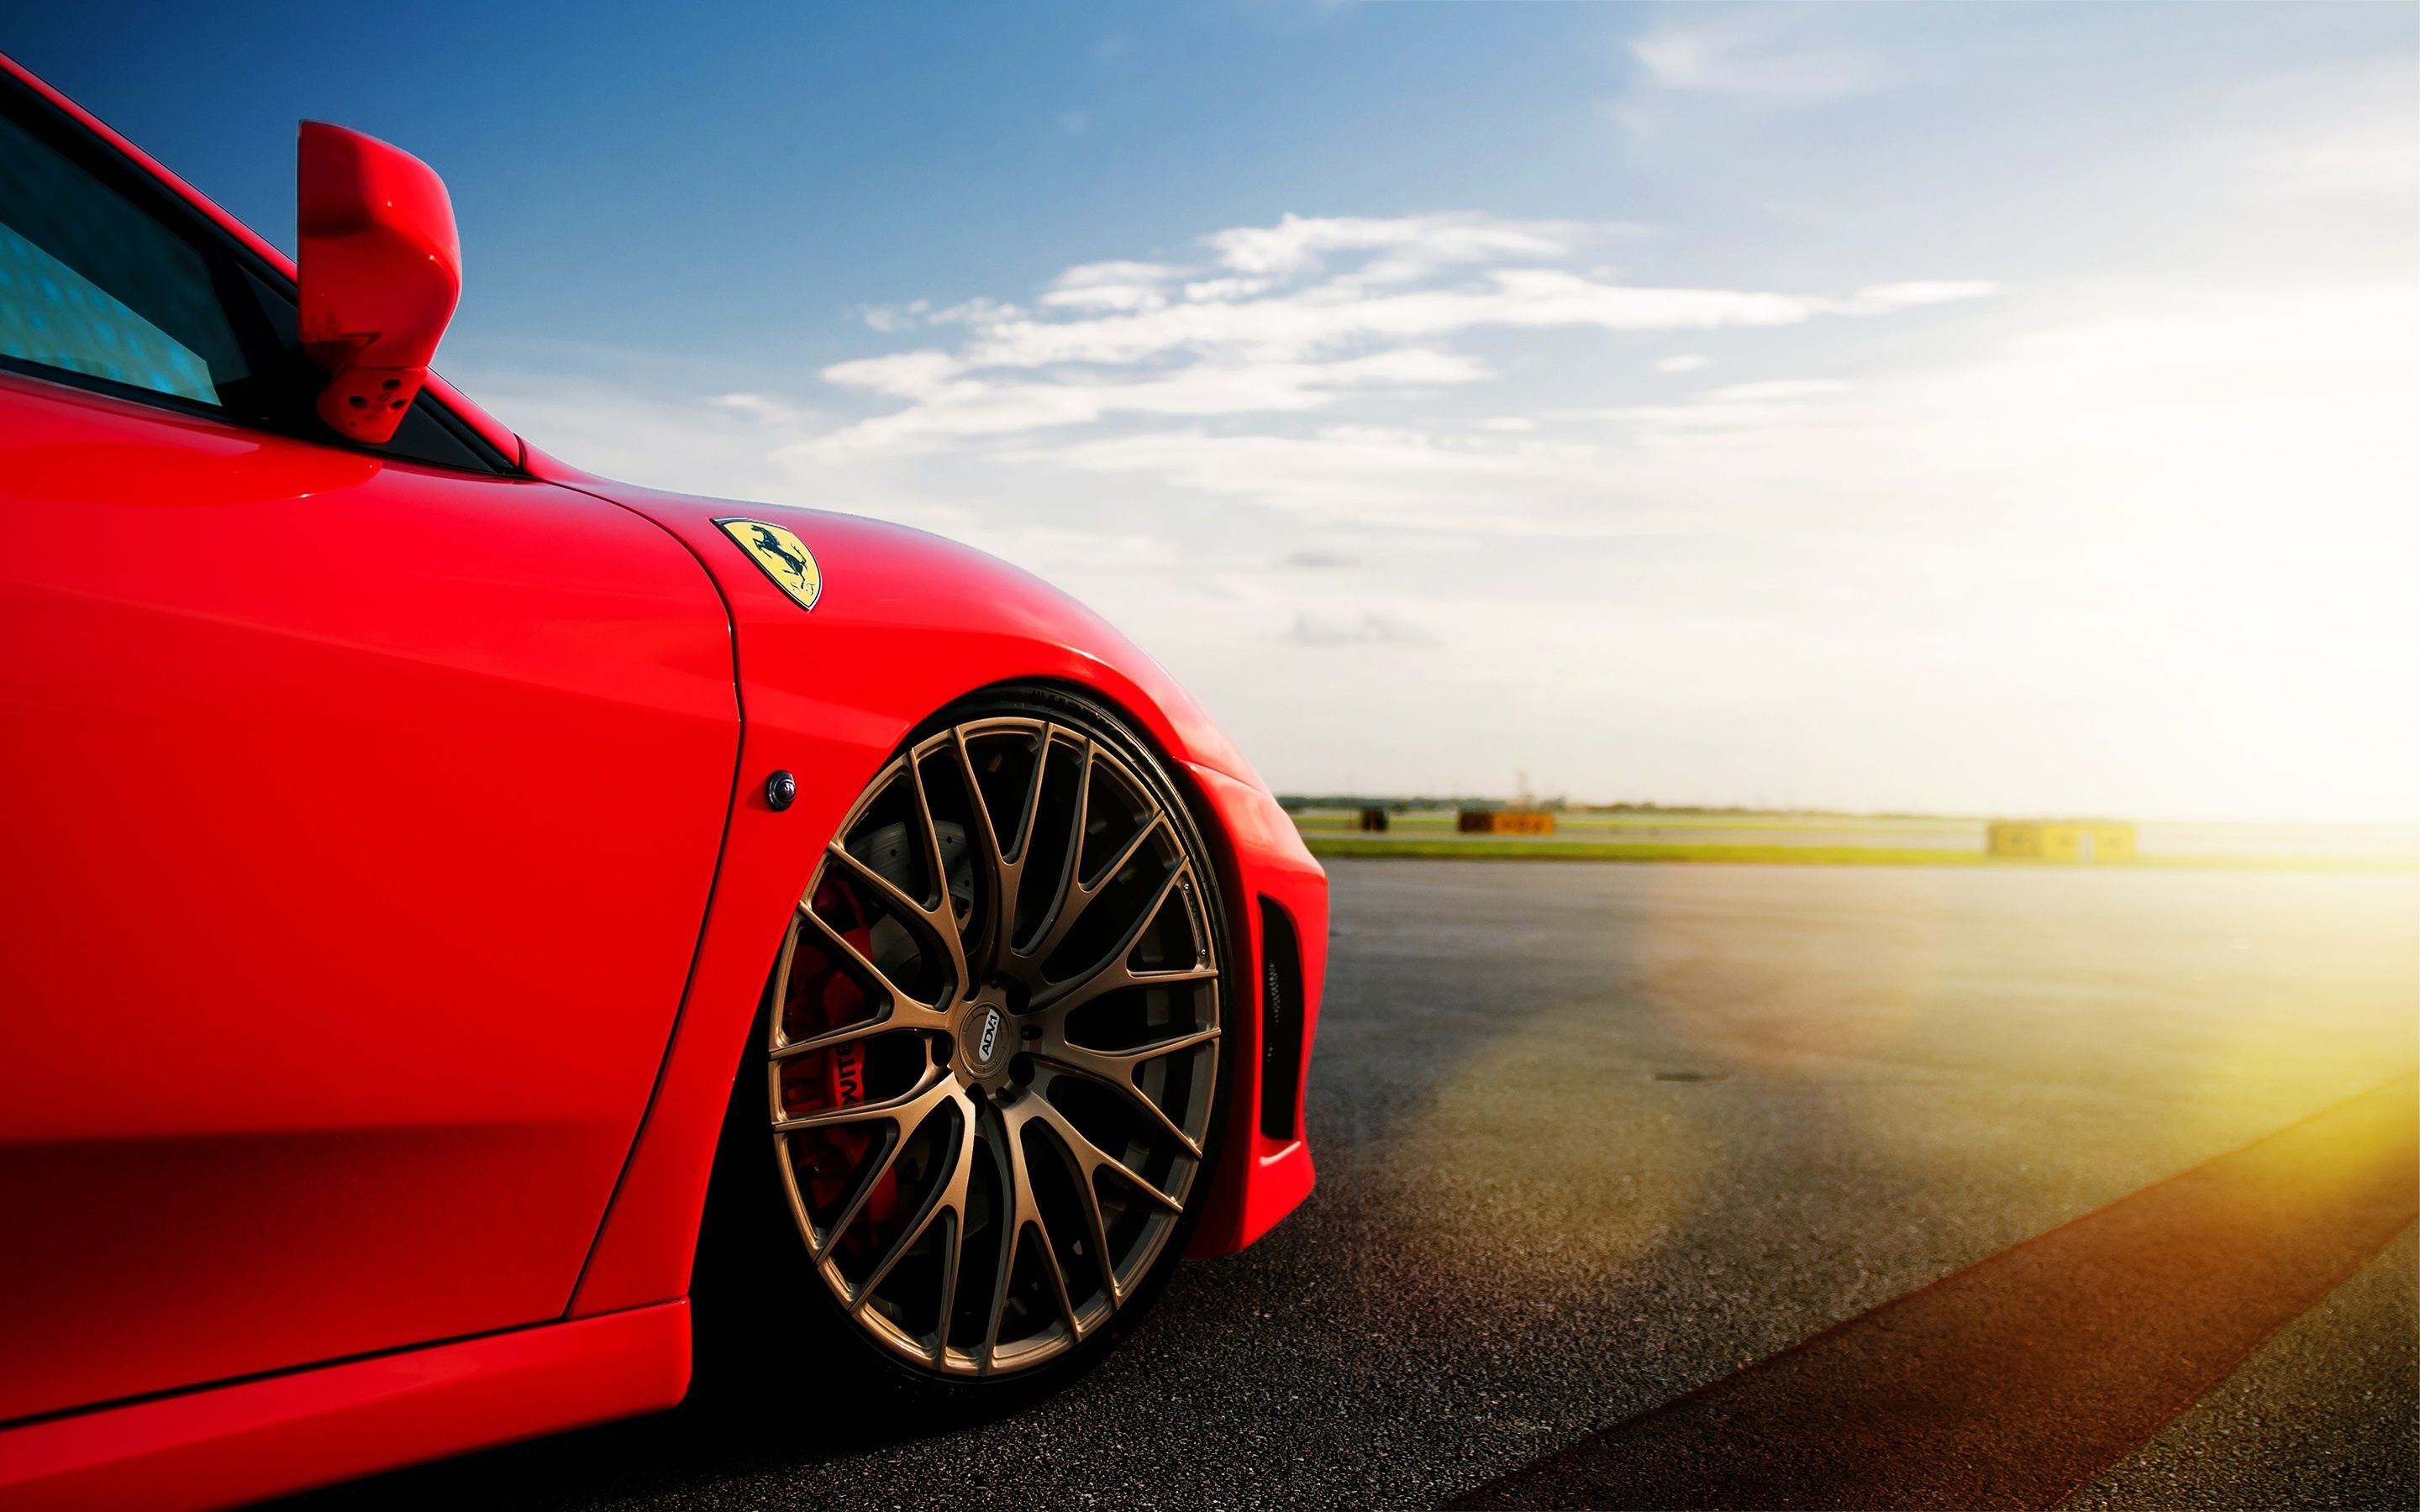 Ferrari Wallpaper Widescreen